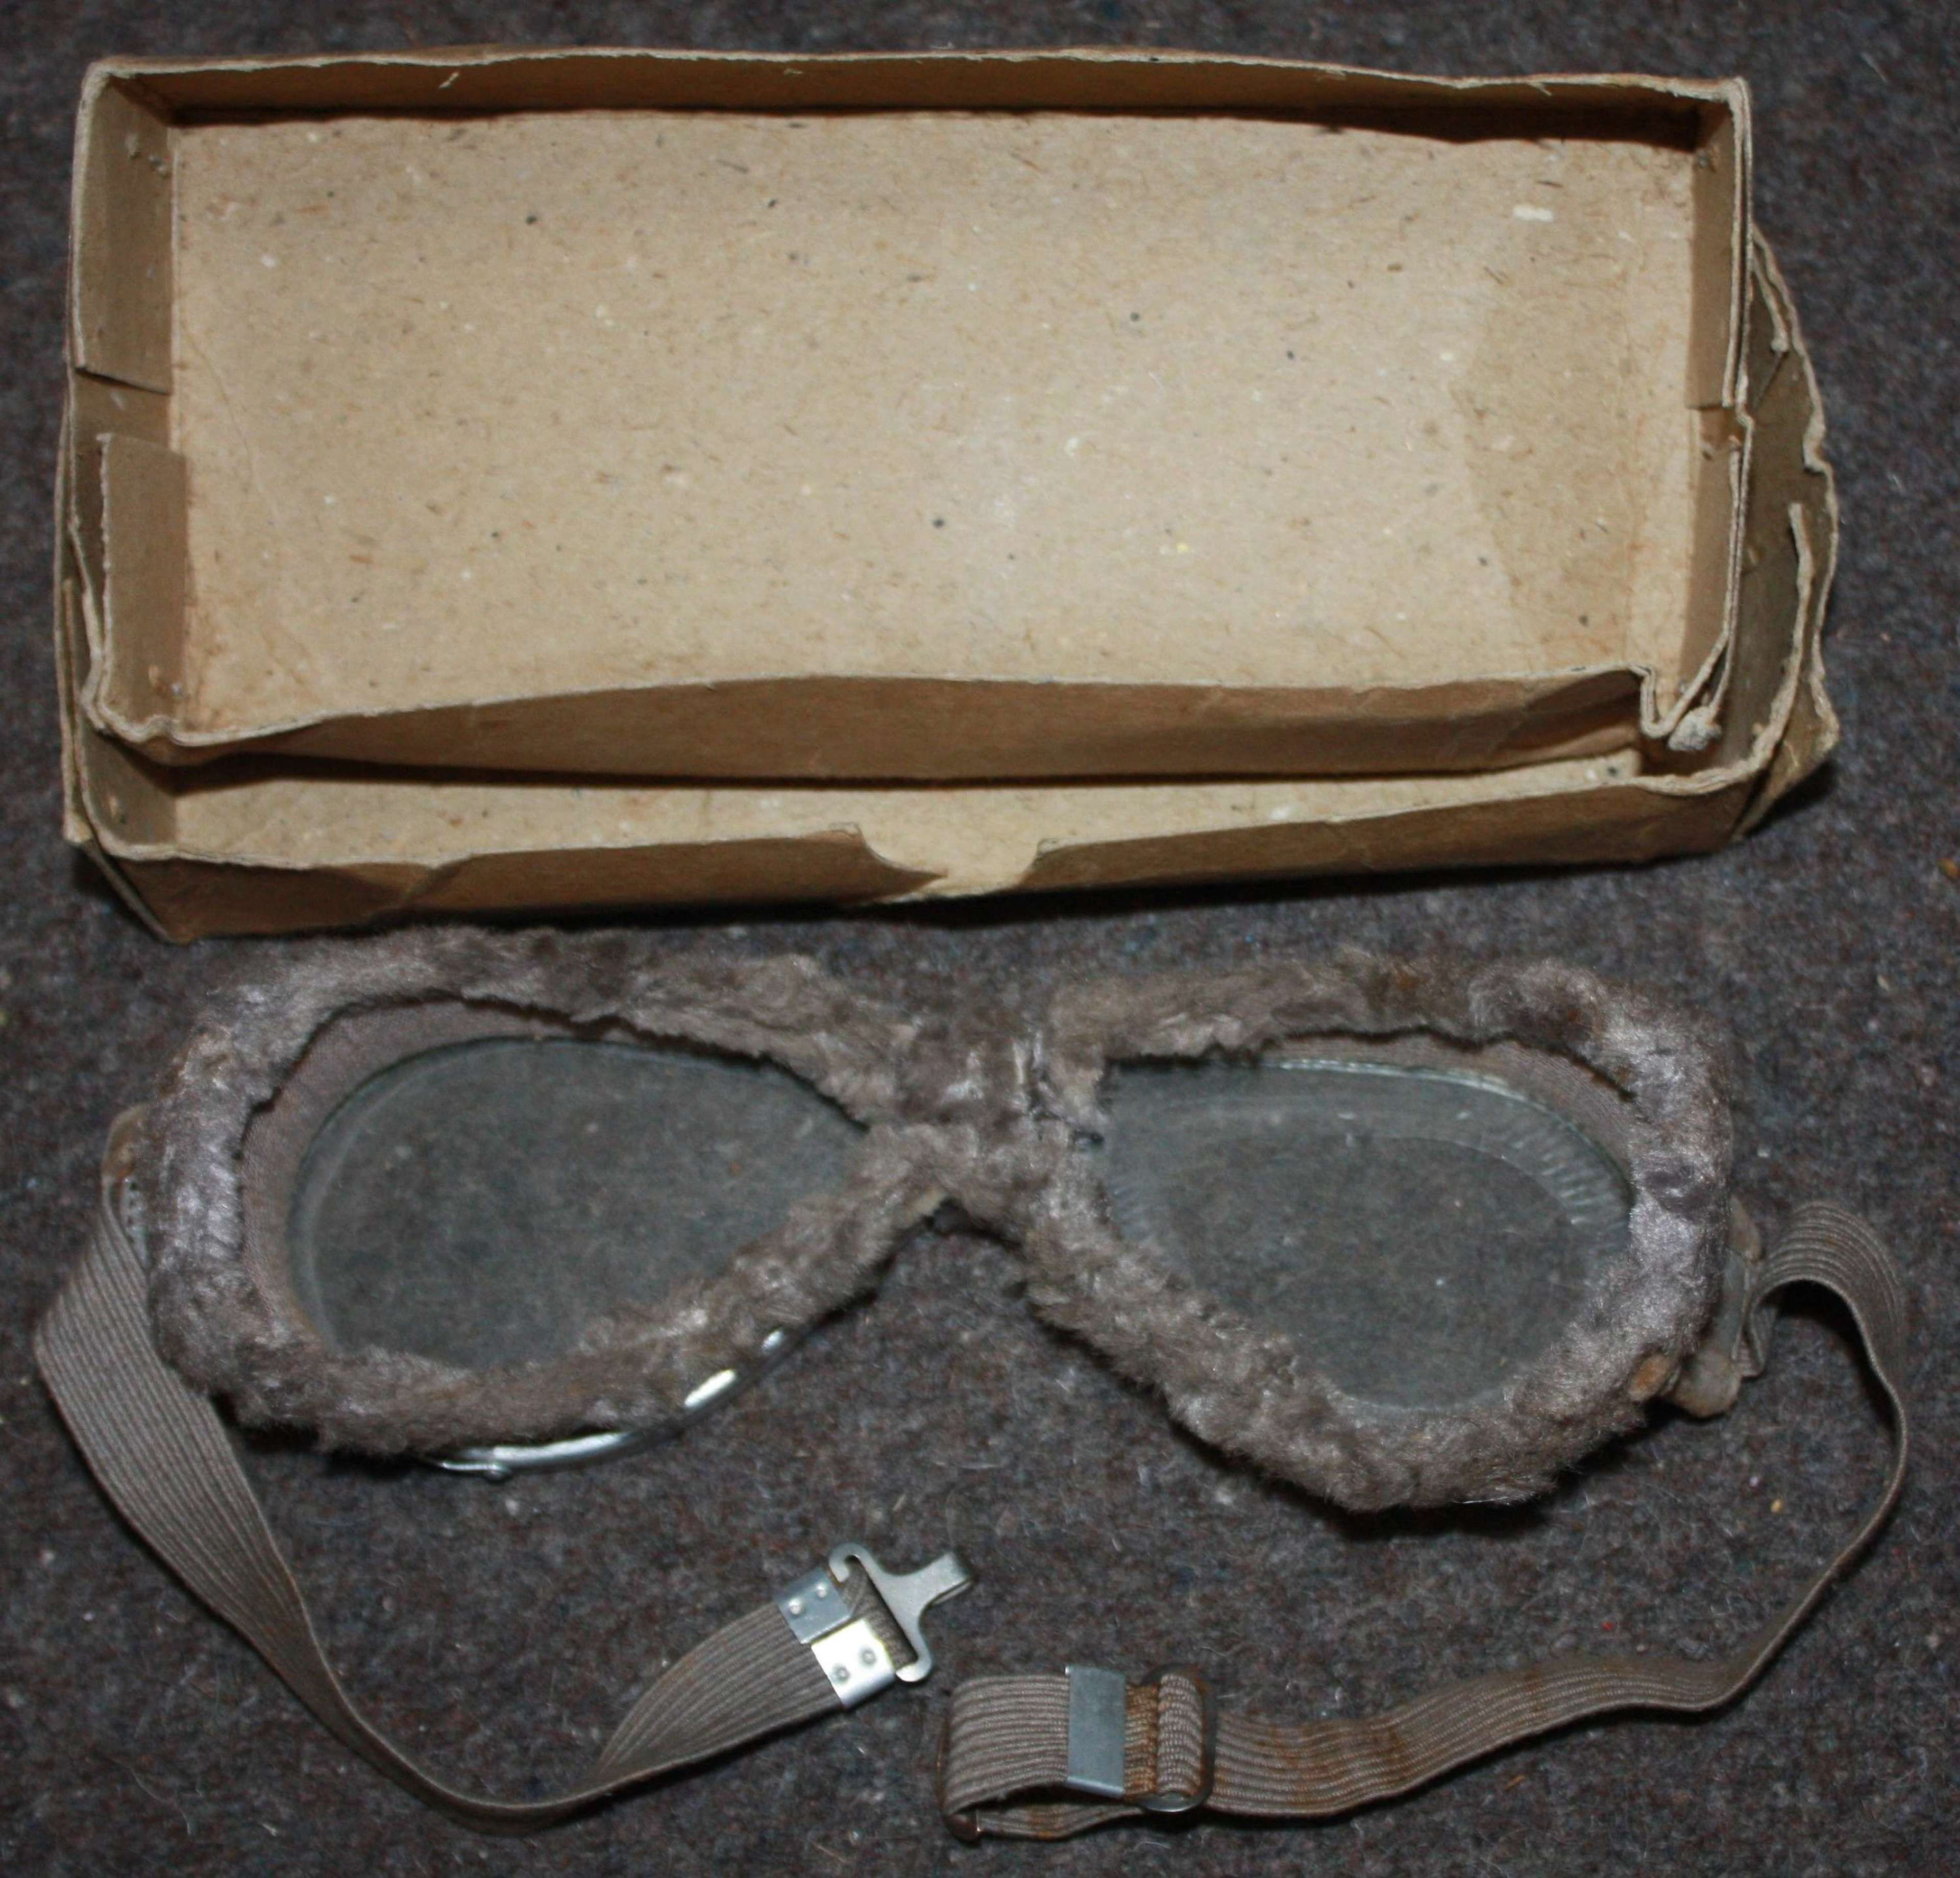 A GOOD PAIR OF THE WWII PERIOD BRITISH ISSUE GOGGLES